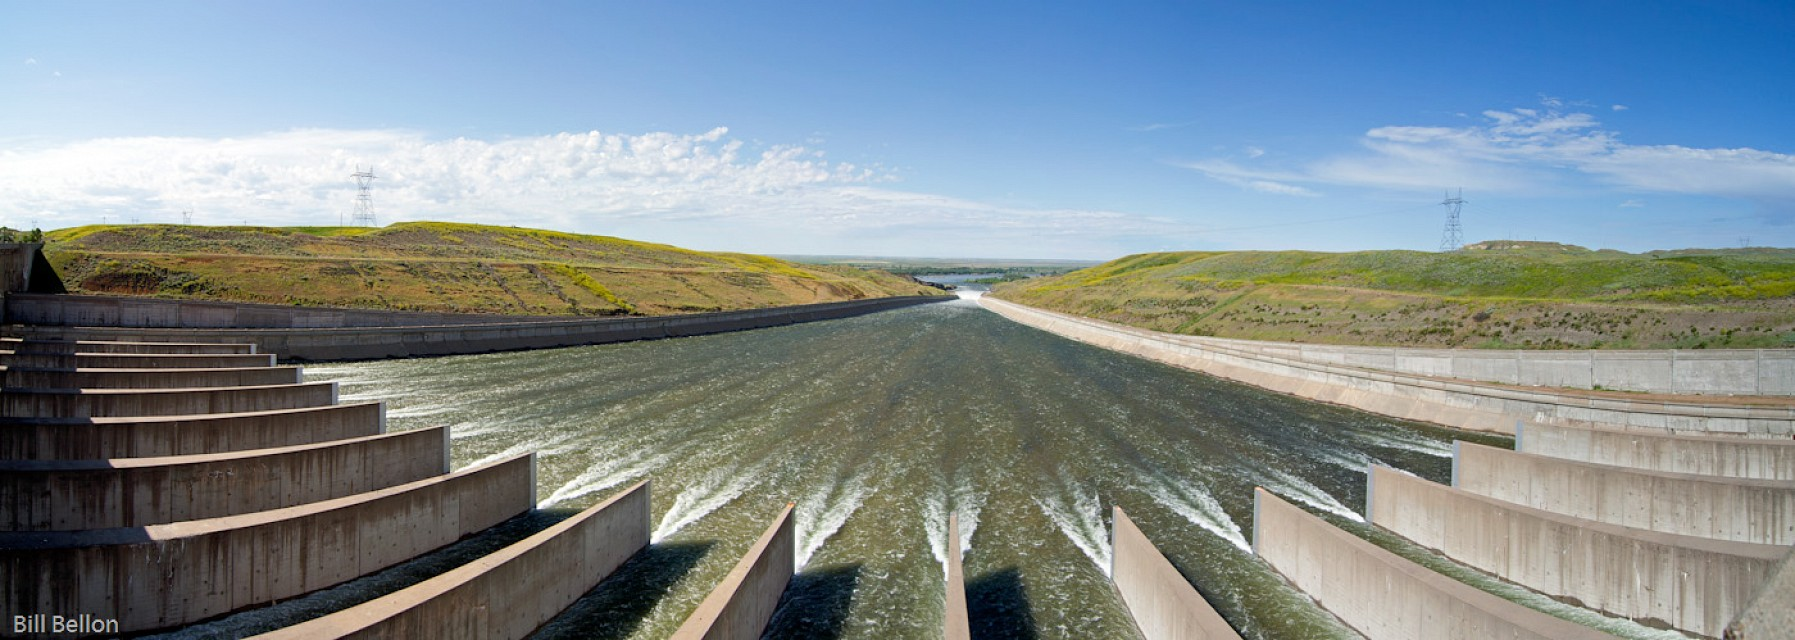 Fort Peck Lake Spillway 1 - Fort Peck Lake